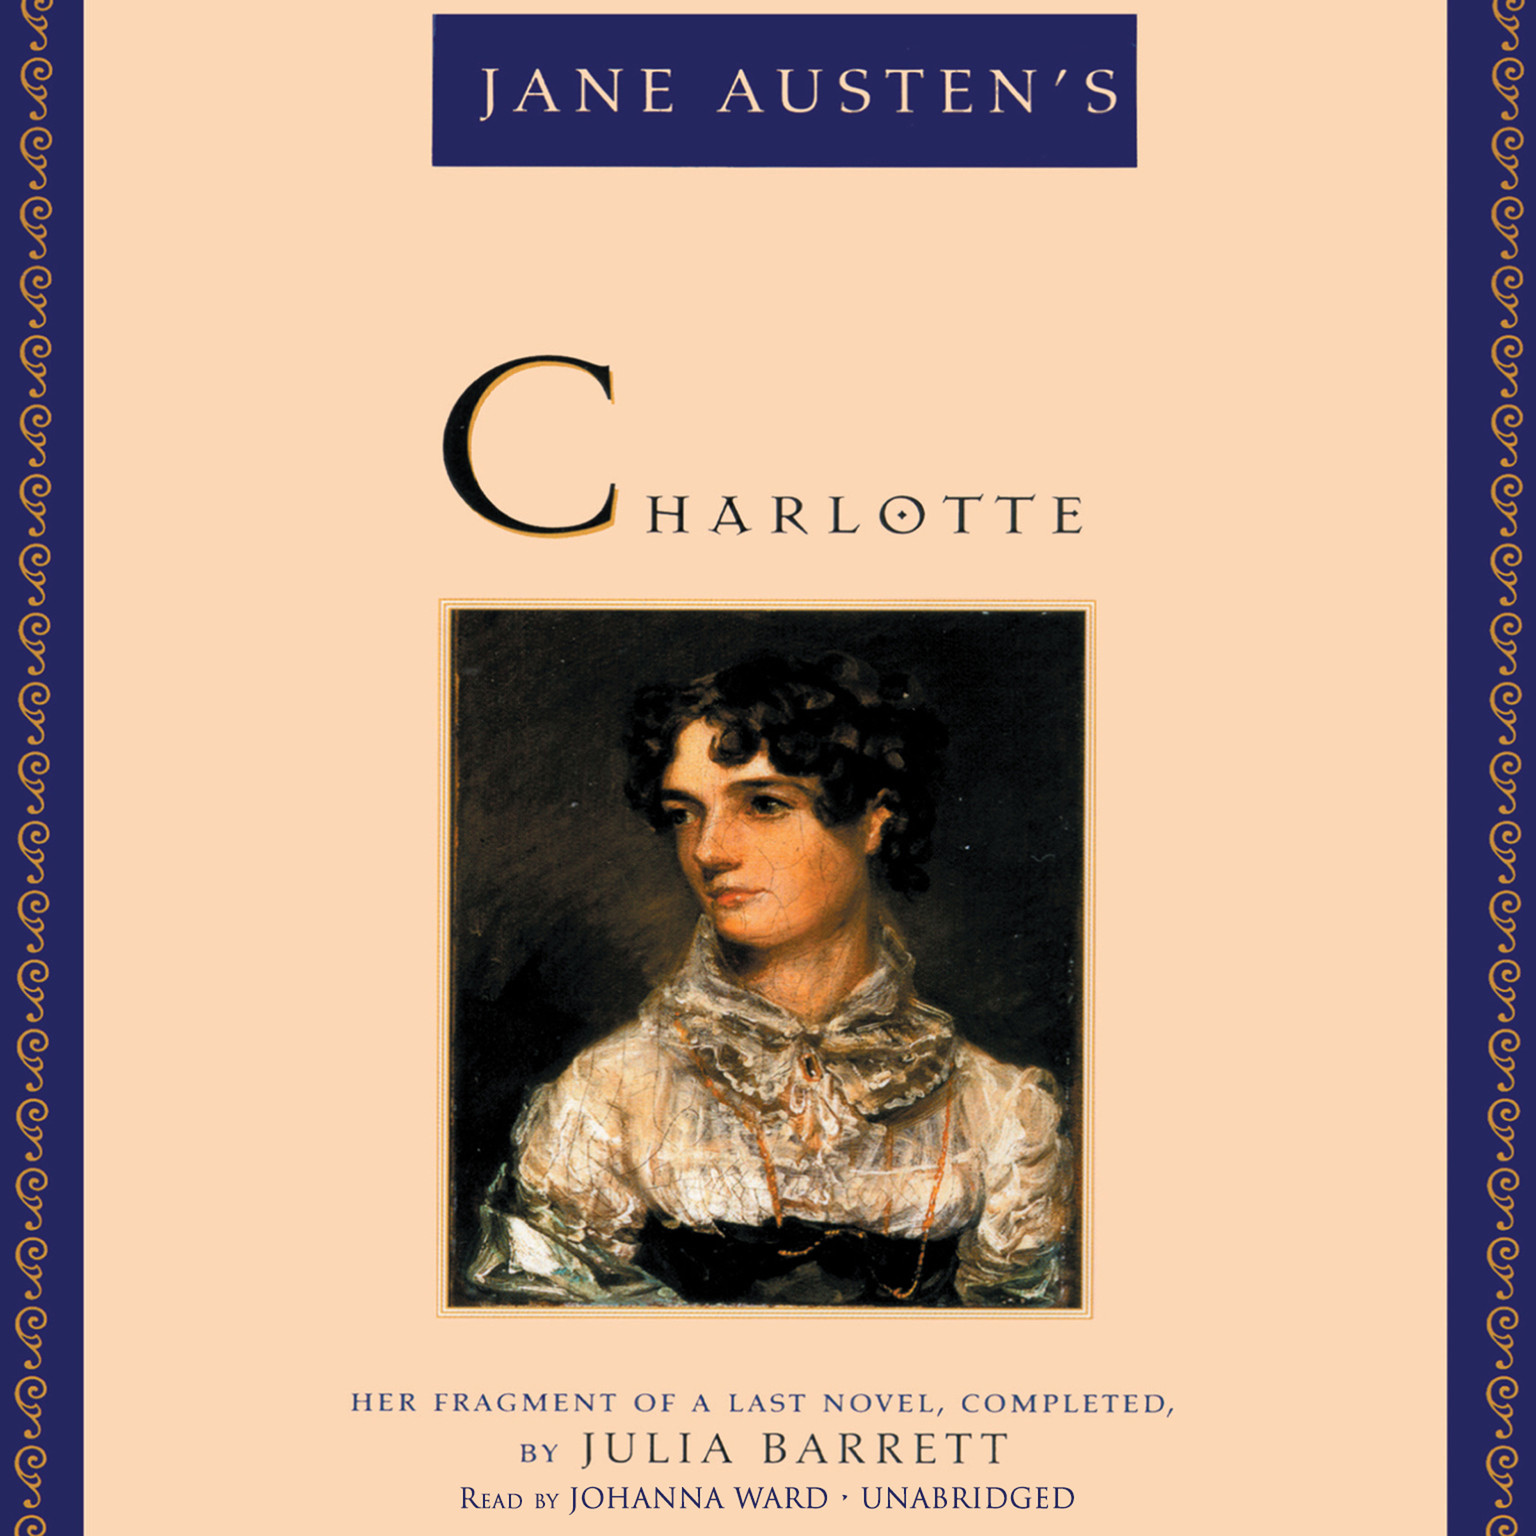 Printable Jane Austen's Charlotte: Her Fragment of a Last Novel, Completed, by Julia Barrett Audiobook Cover Art